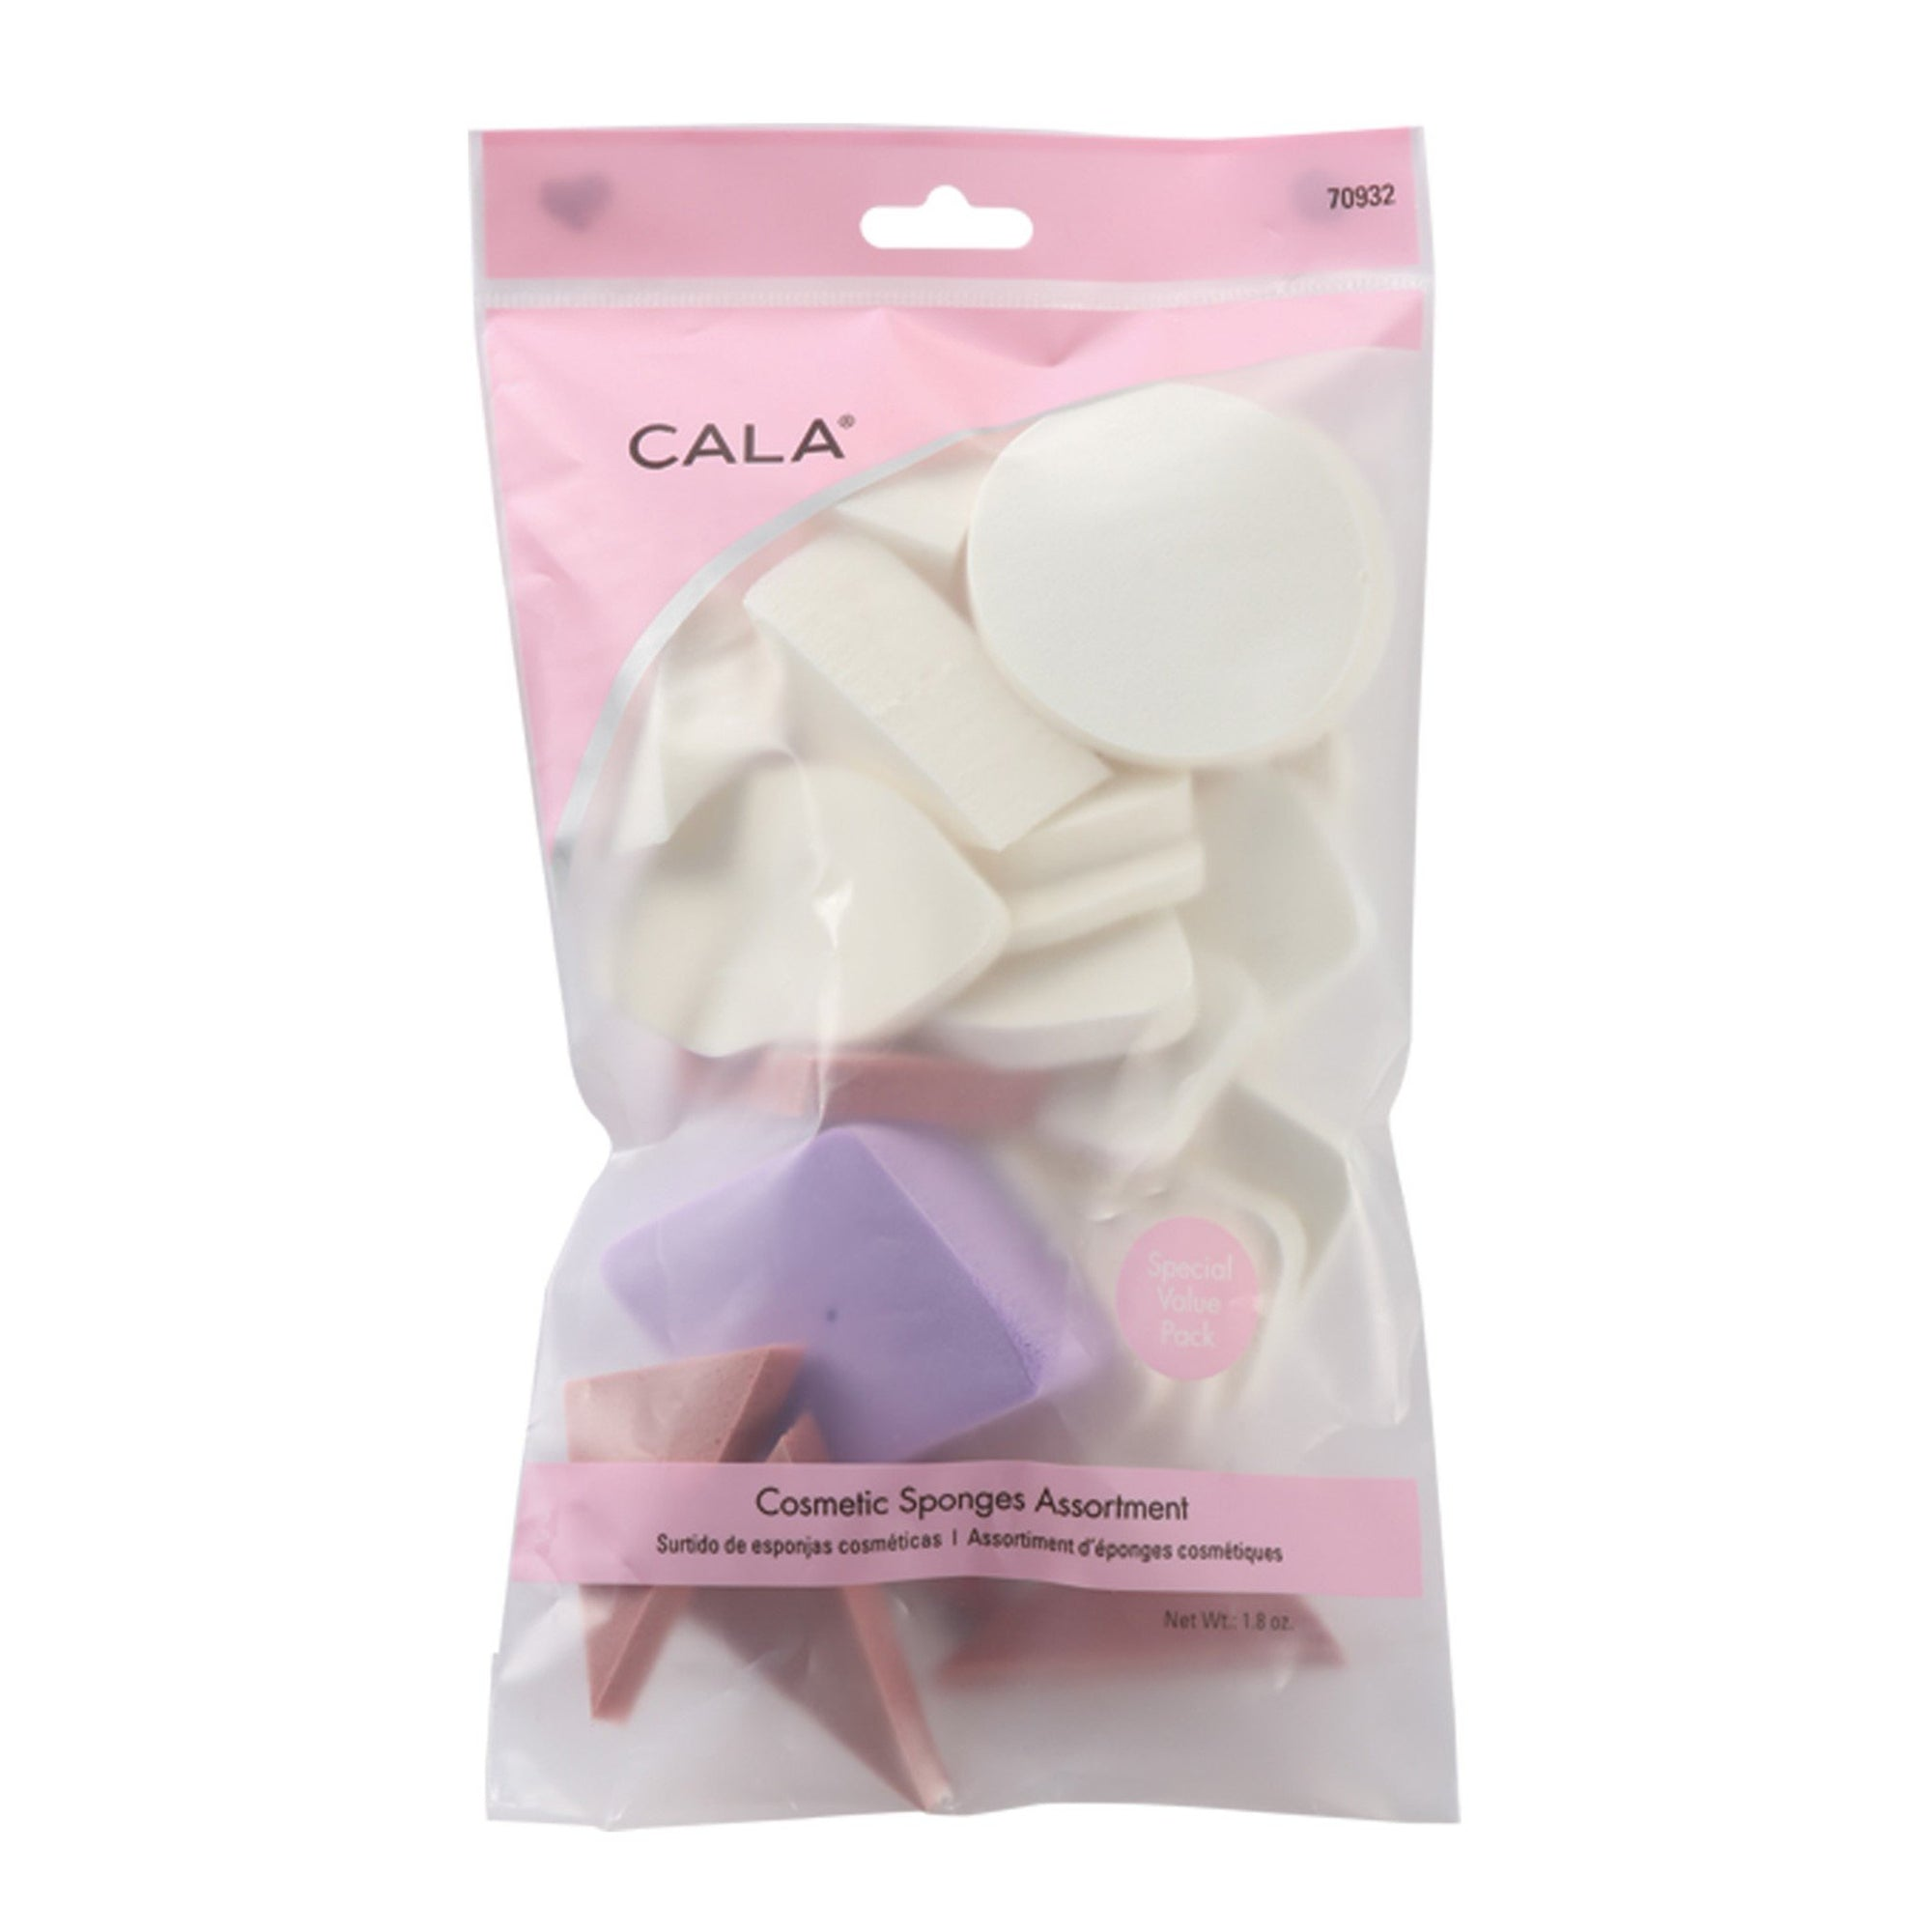 Cala Cosmetic Sponges Assortment